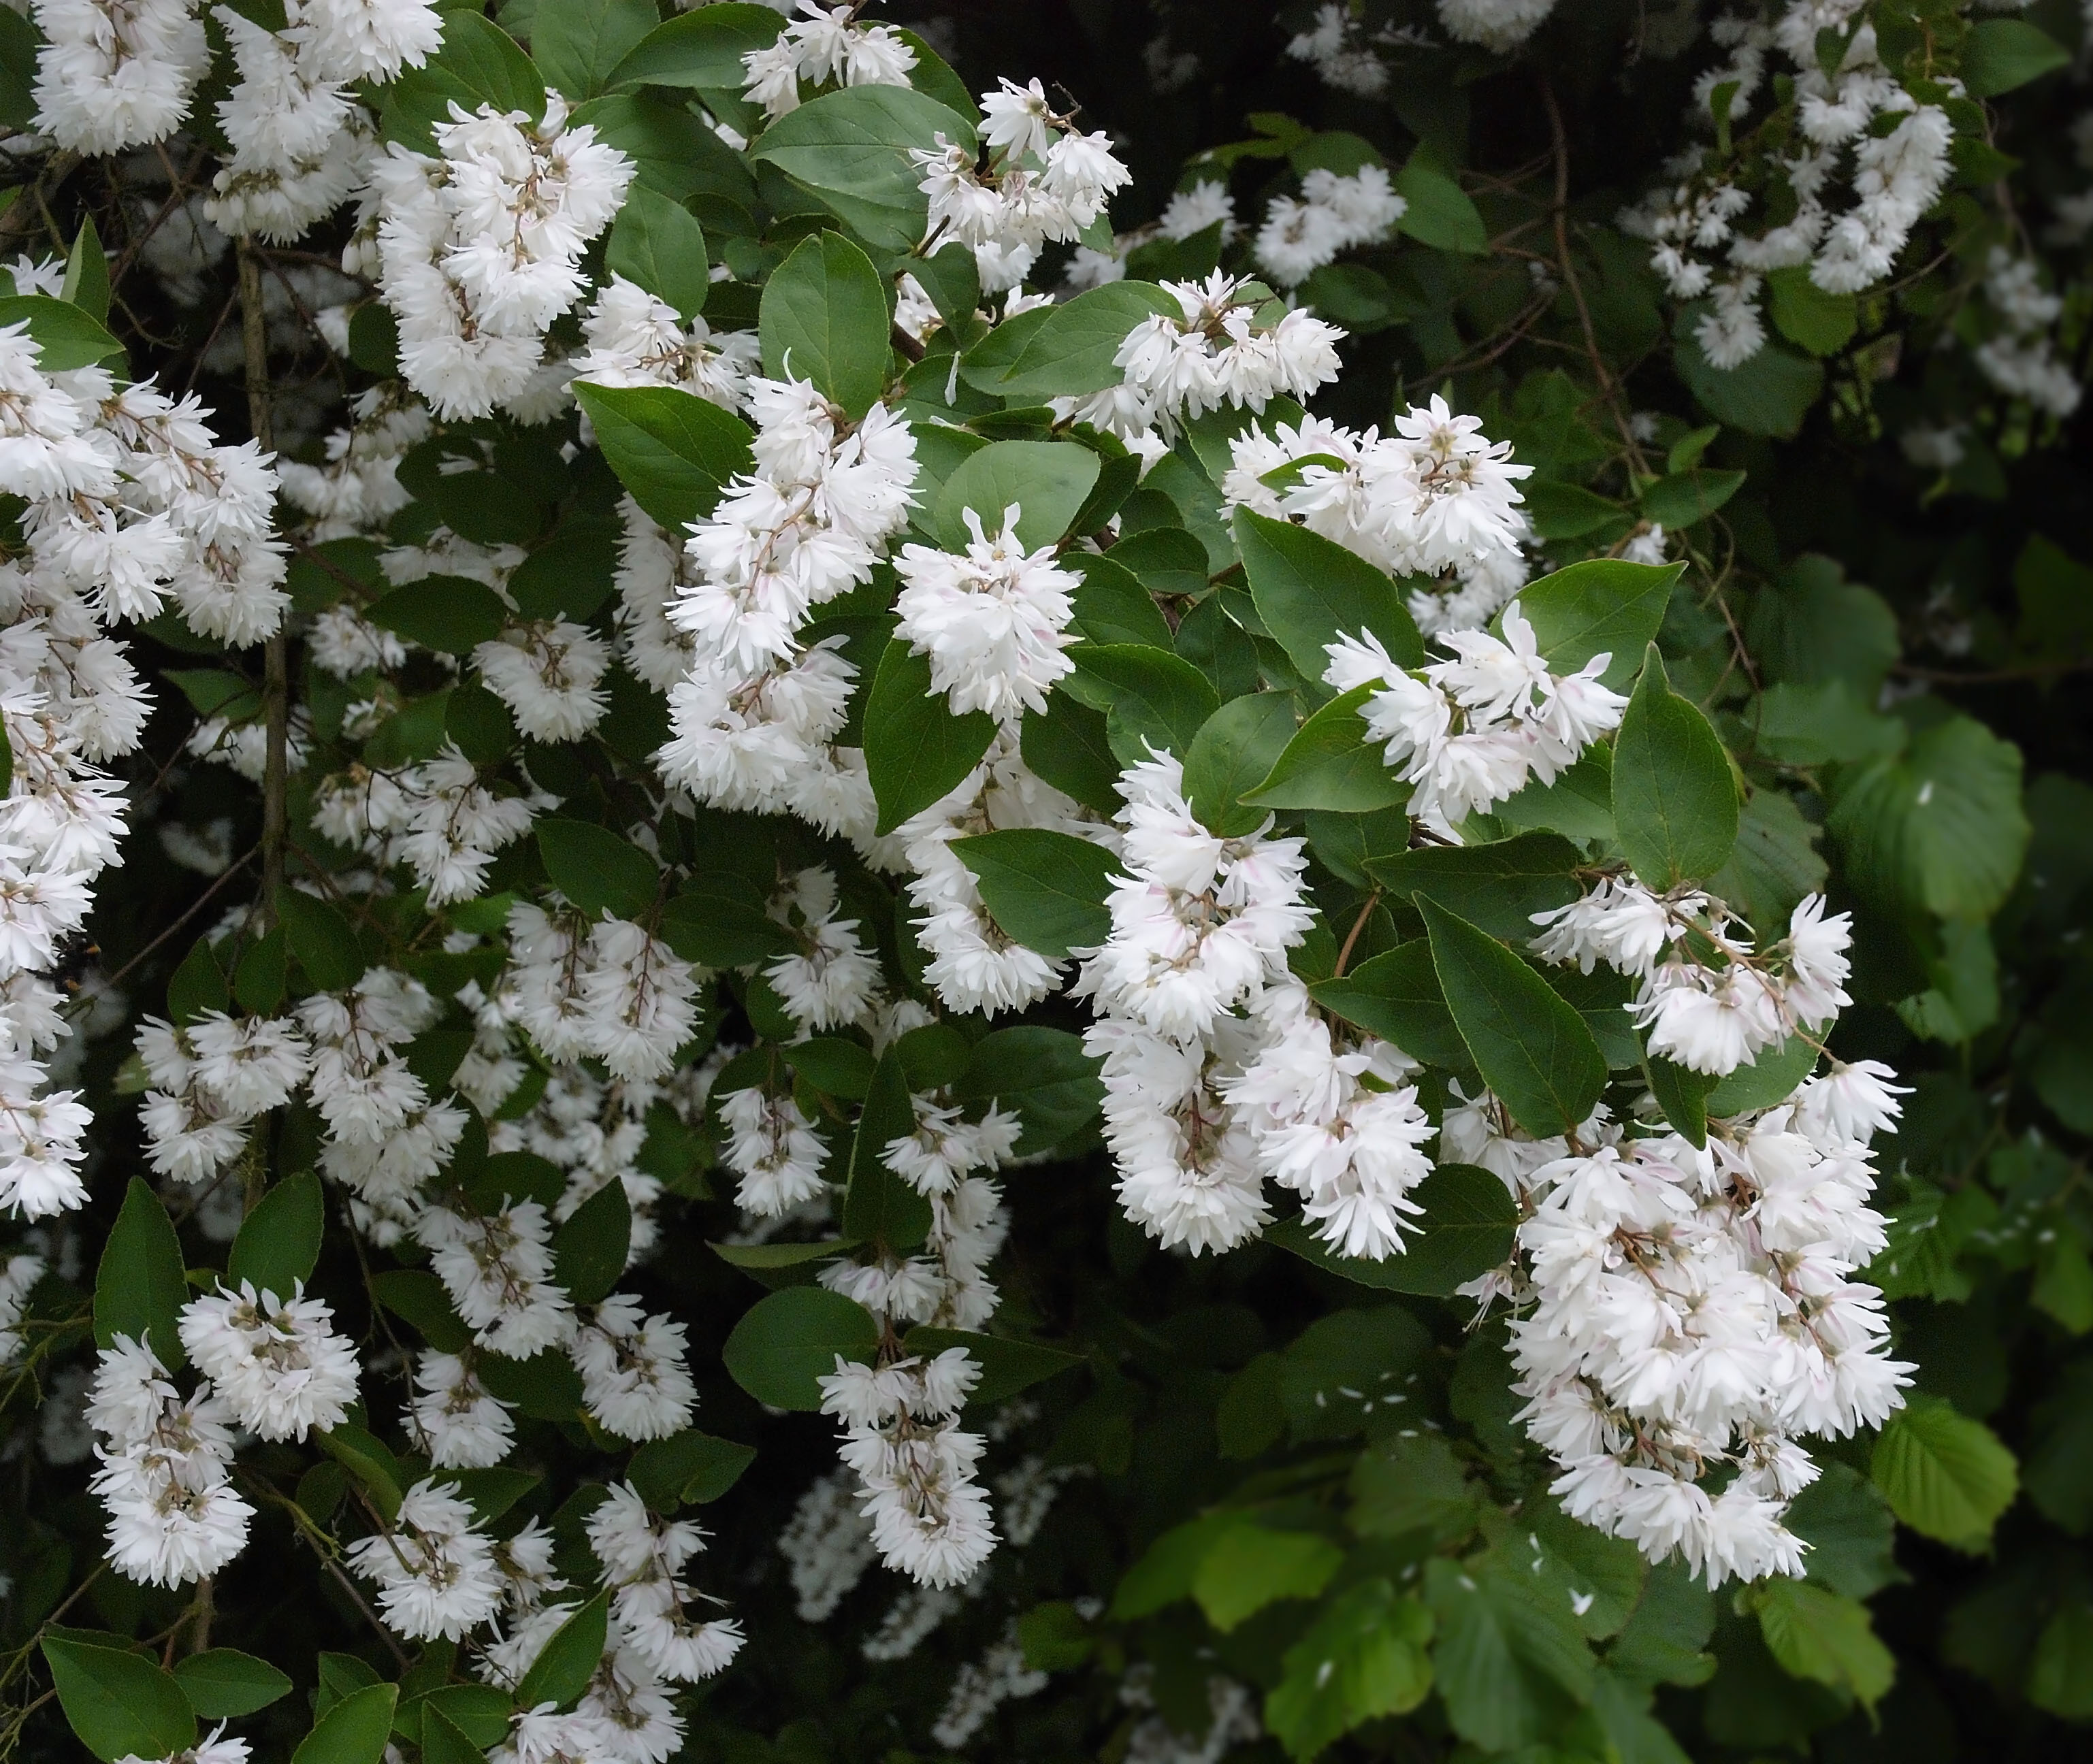 Photo of Deutzia scabra by Wouter Hagens from Wikimedia Commons